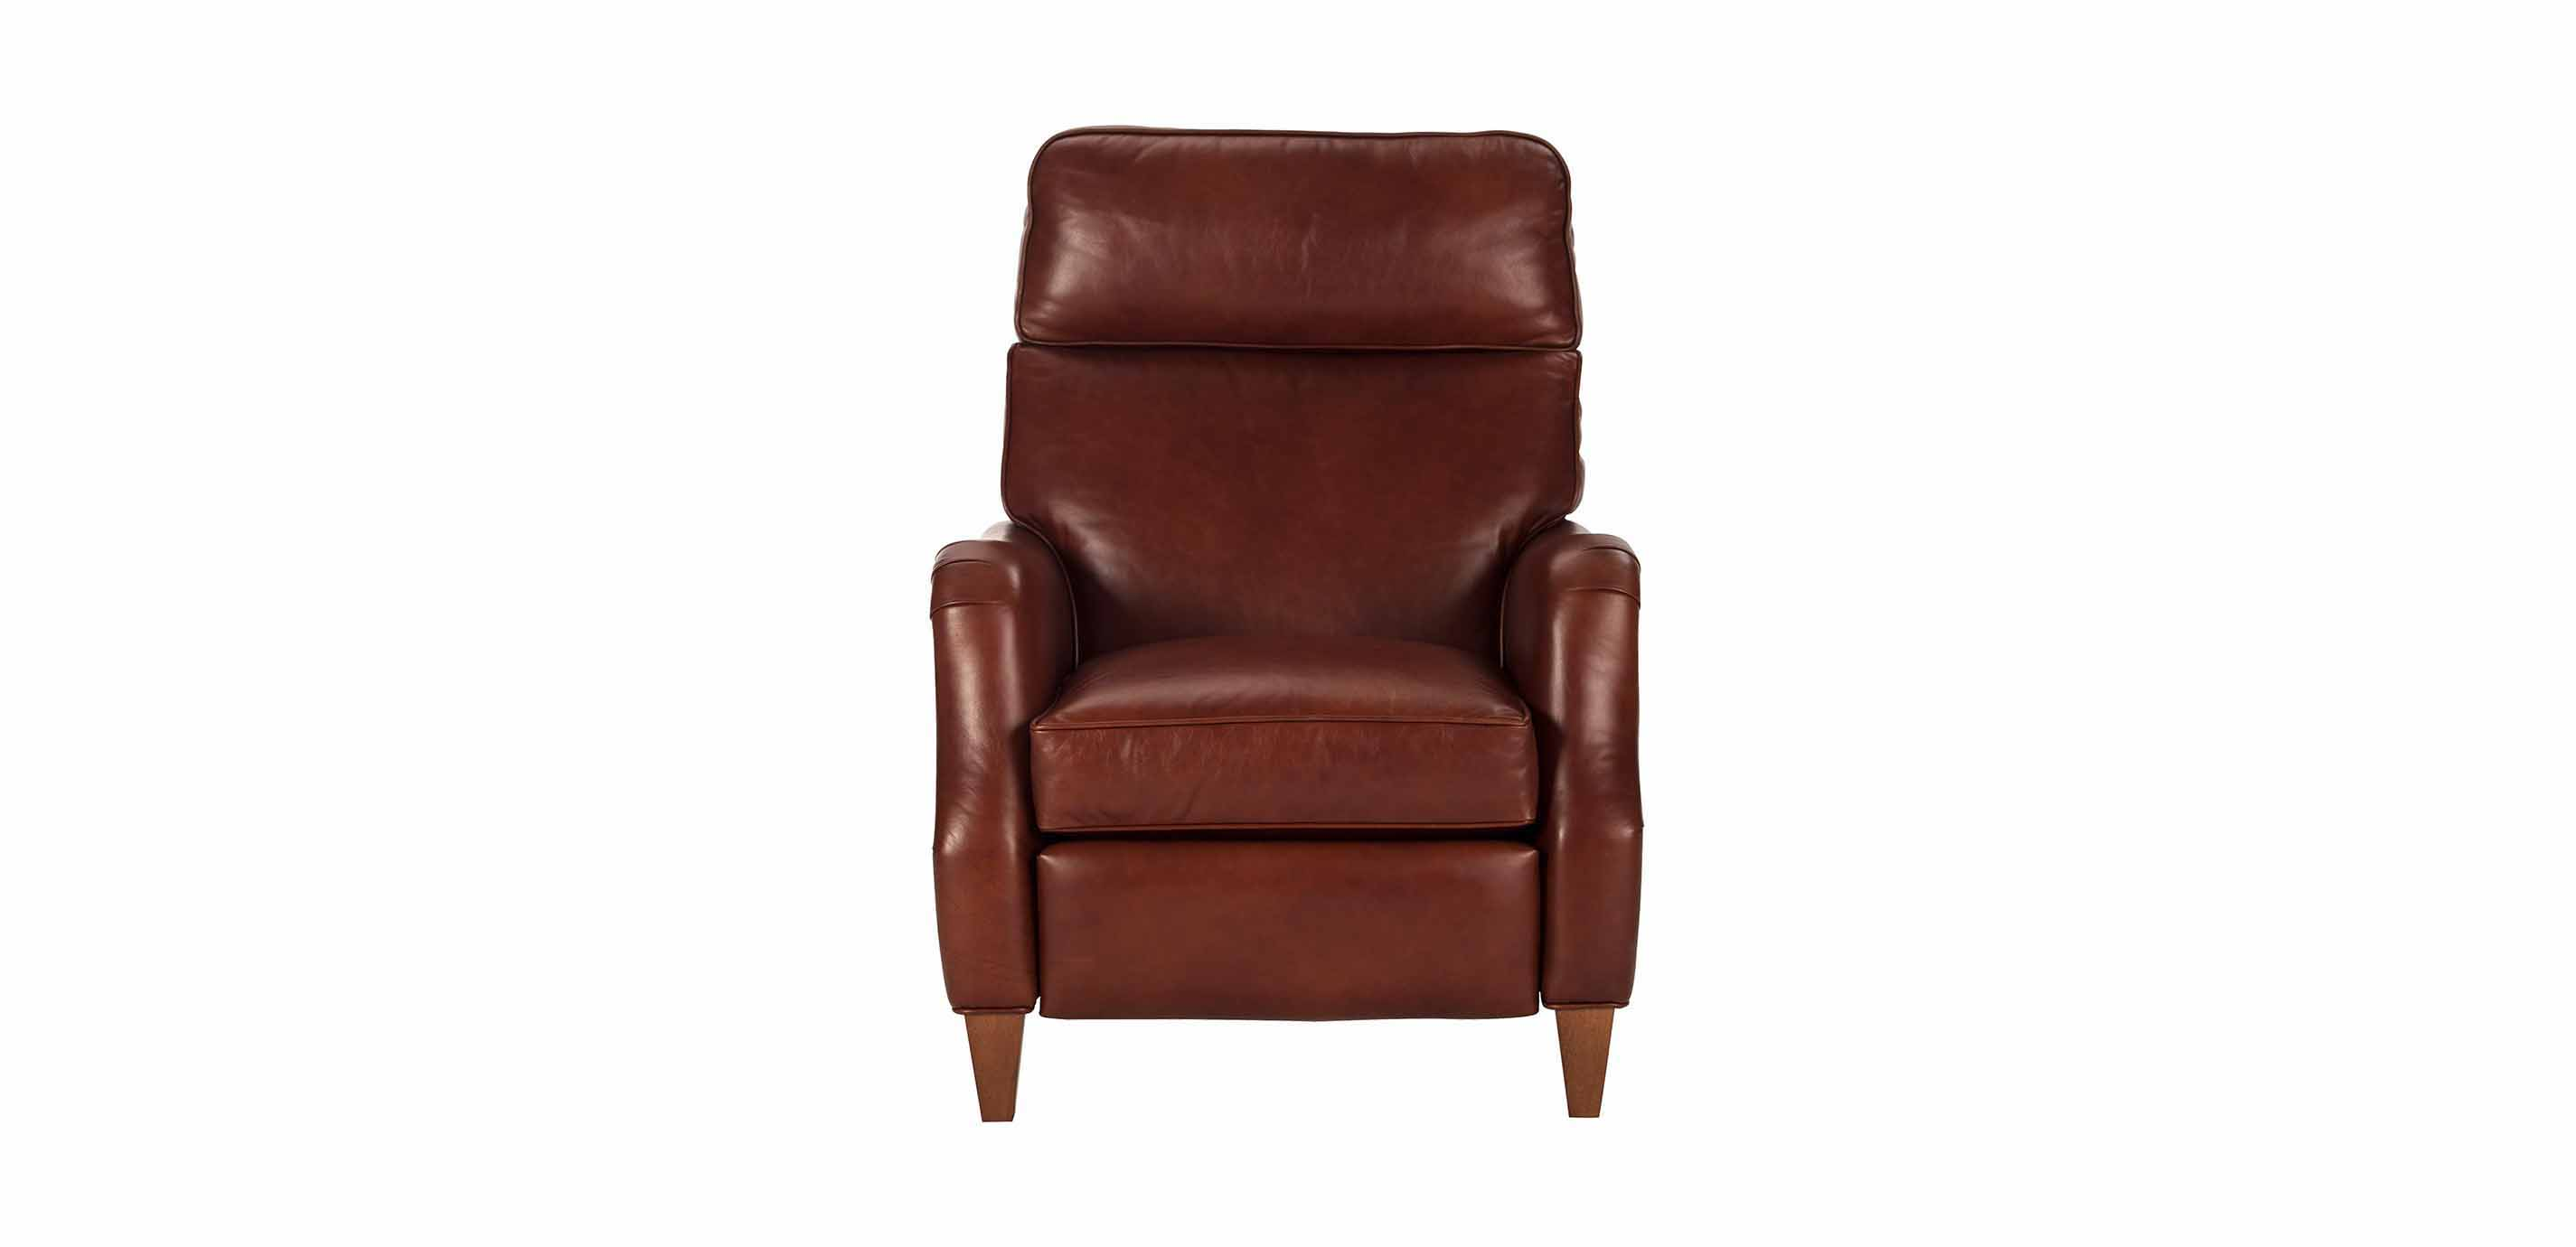 Aiden Leather Recliner, Old English/Saddle | Recliners ...